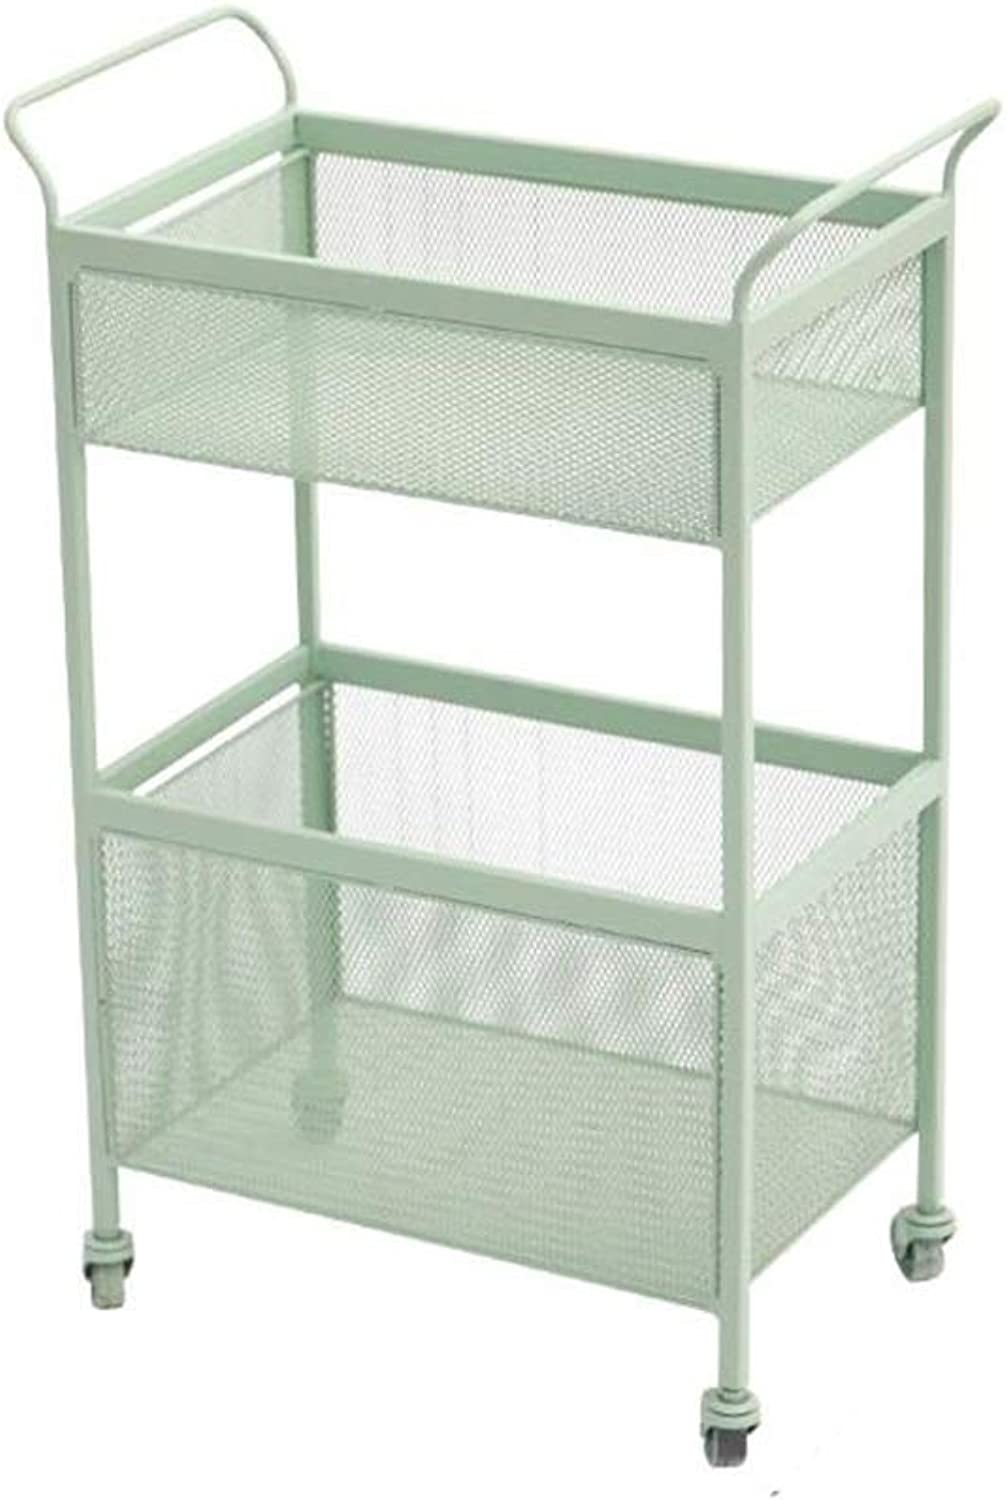 JCAFA Shelves Iron Double Shelf Four-Wheeled Trolley with Pulley DIY Open Bookcase Home Improvement Kitchen Rack, Tool Holder (color   Light Green, Size   15.74  10.03  27.95in)